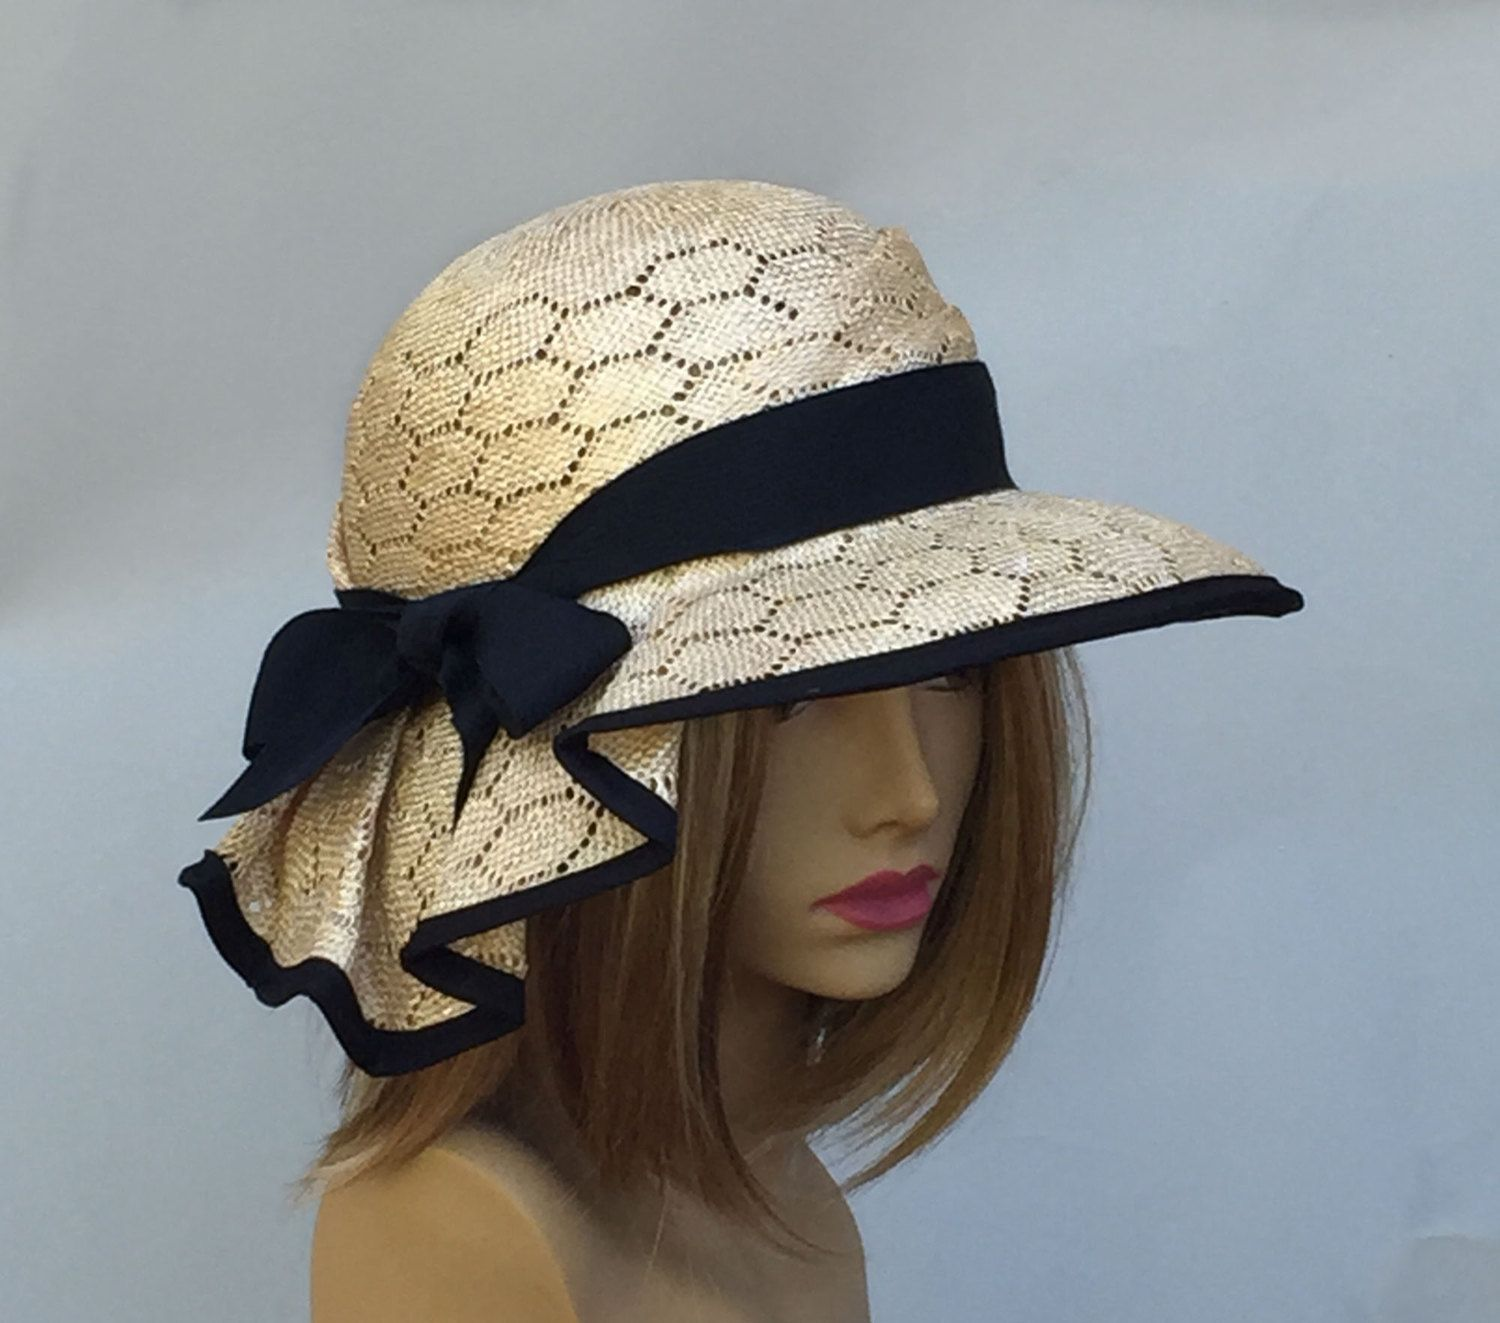 0a05fb224730a Sonya Kentucky Derby hat beautiful straw hat with от LuminataCo